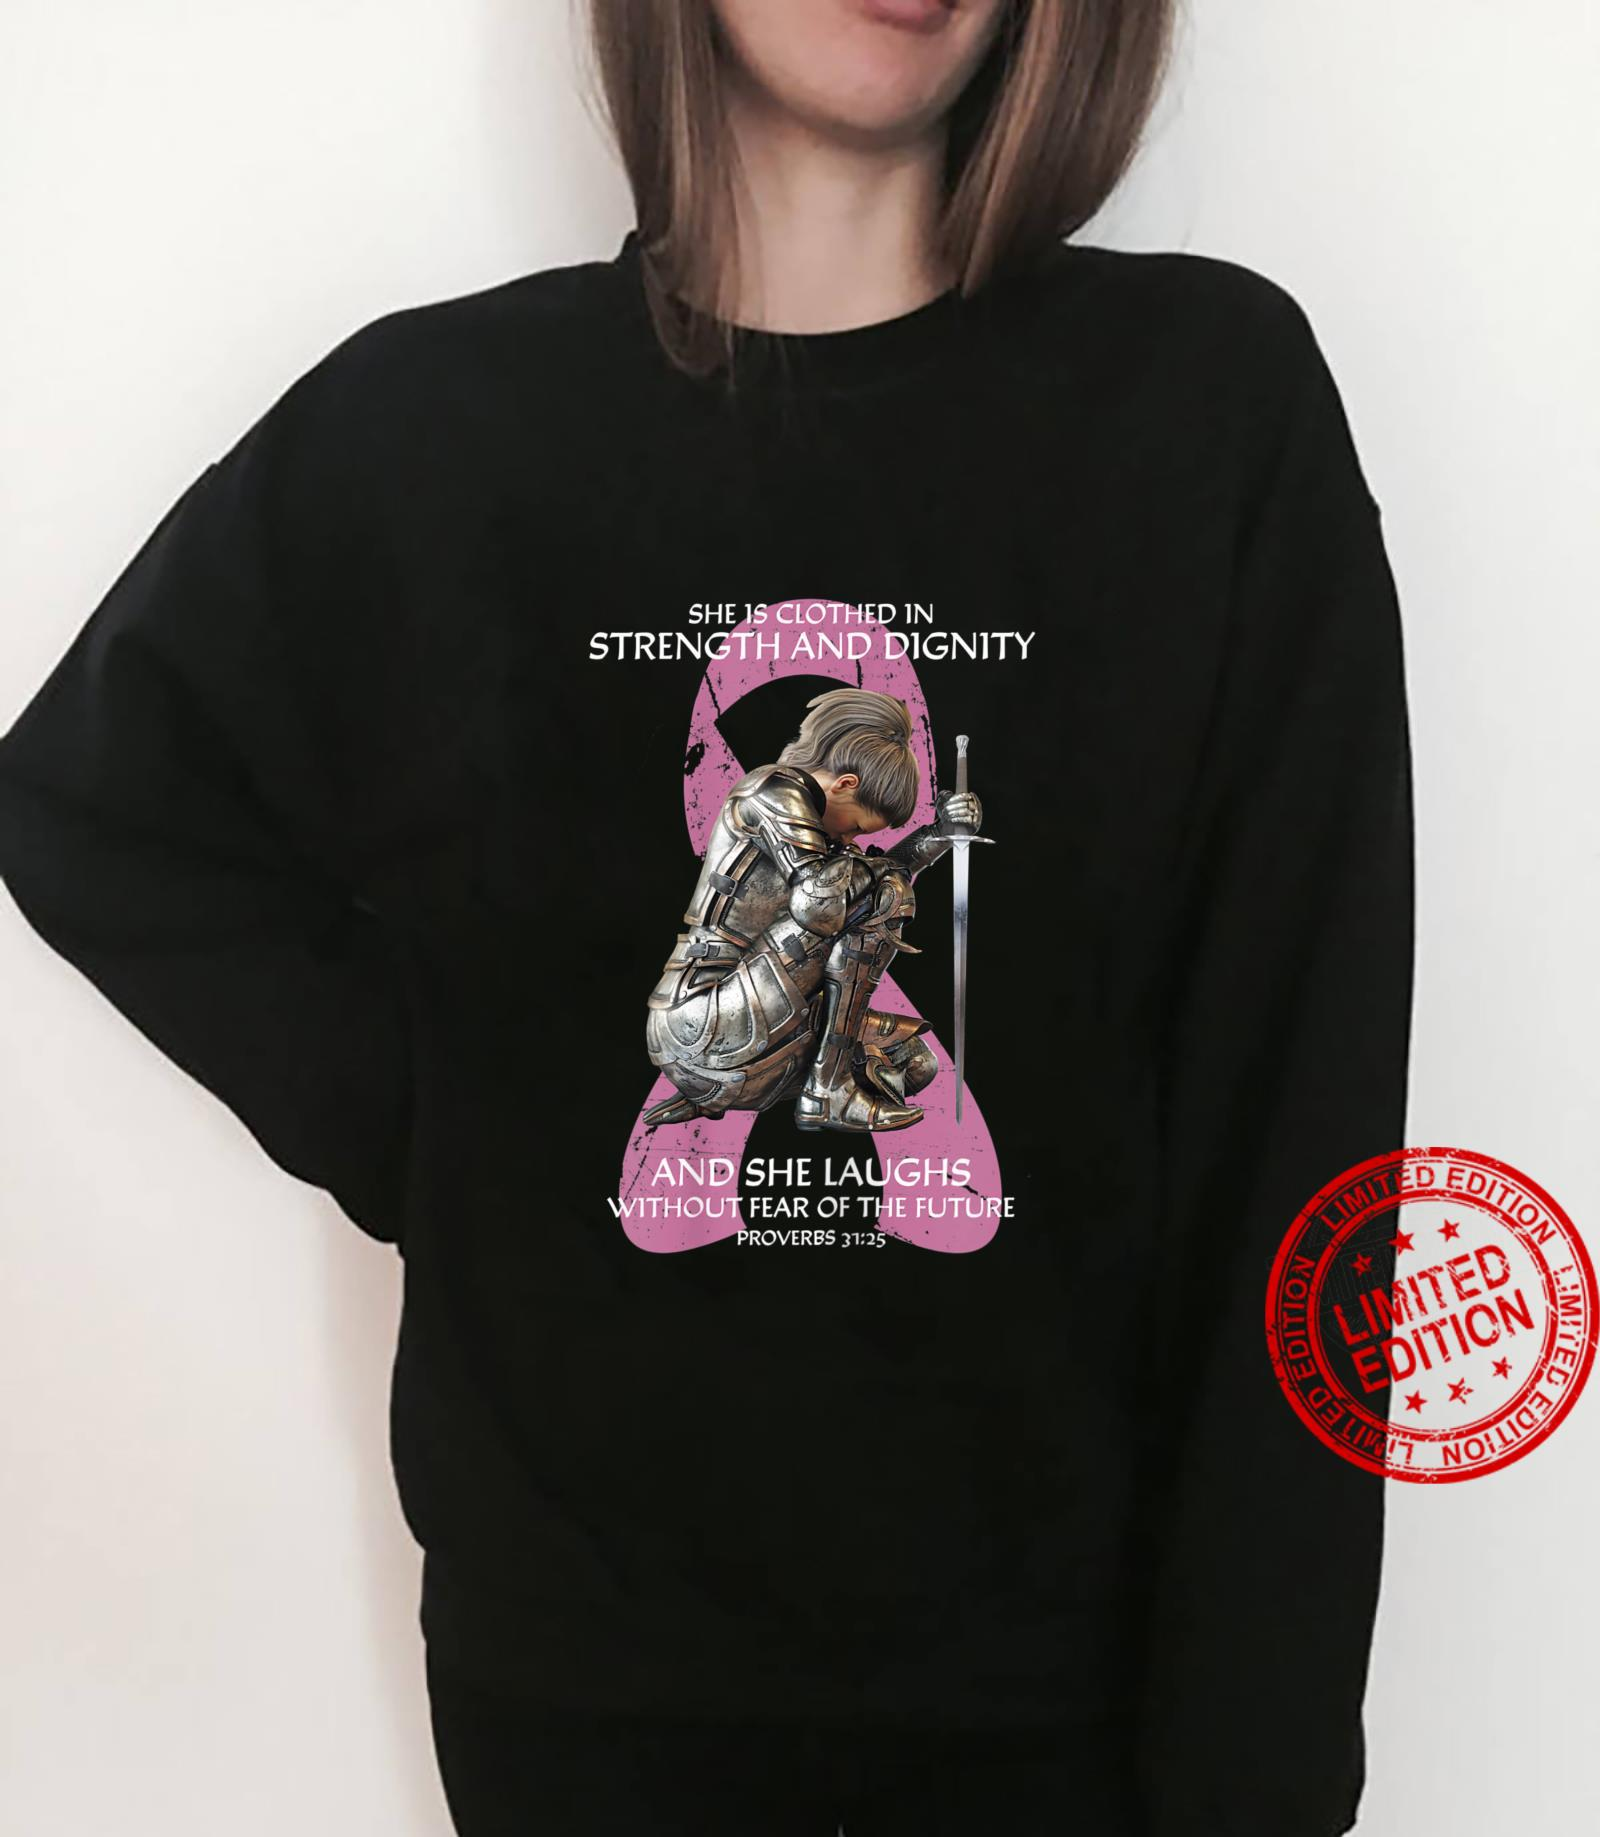 She is Clothed In Strength aAnd Dignity Shirt sweater